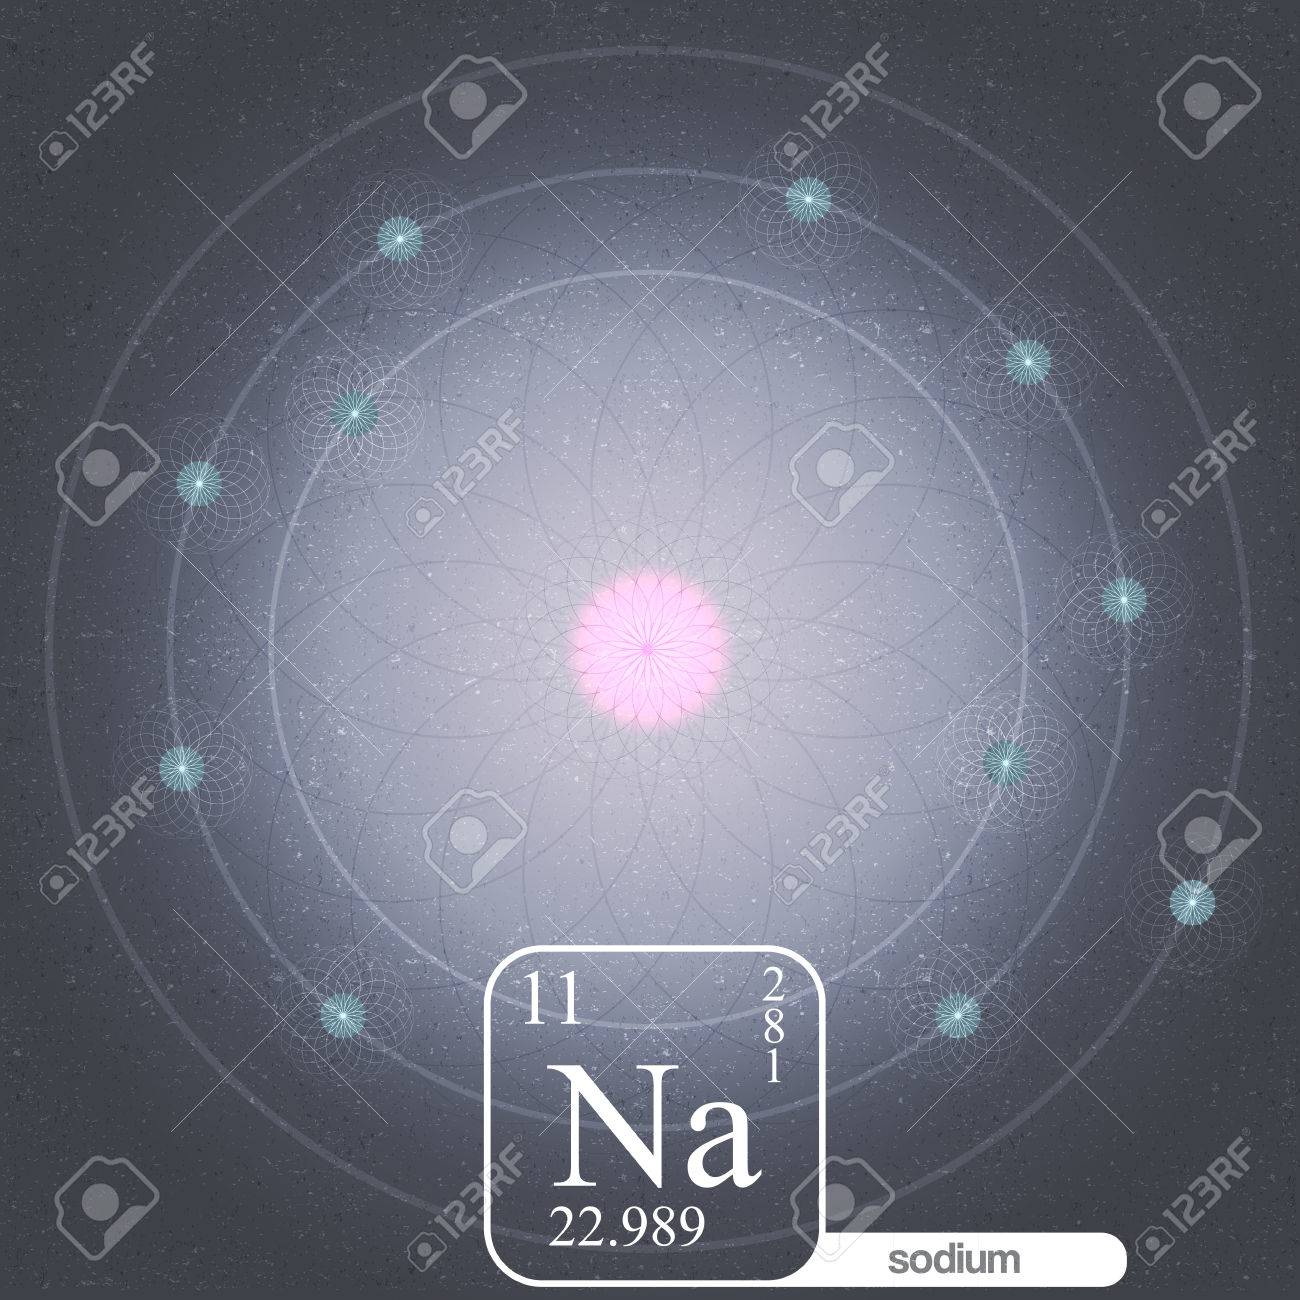 hight resolution of sodium atom with electron orbits and properties vector illustration stock vector 33059955